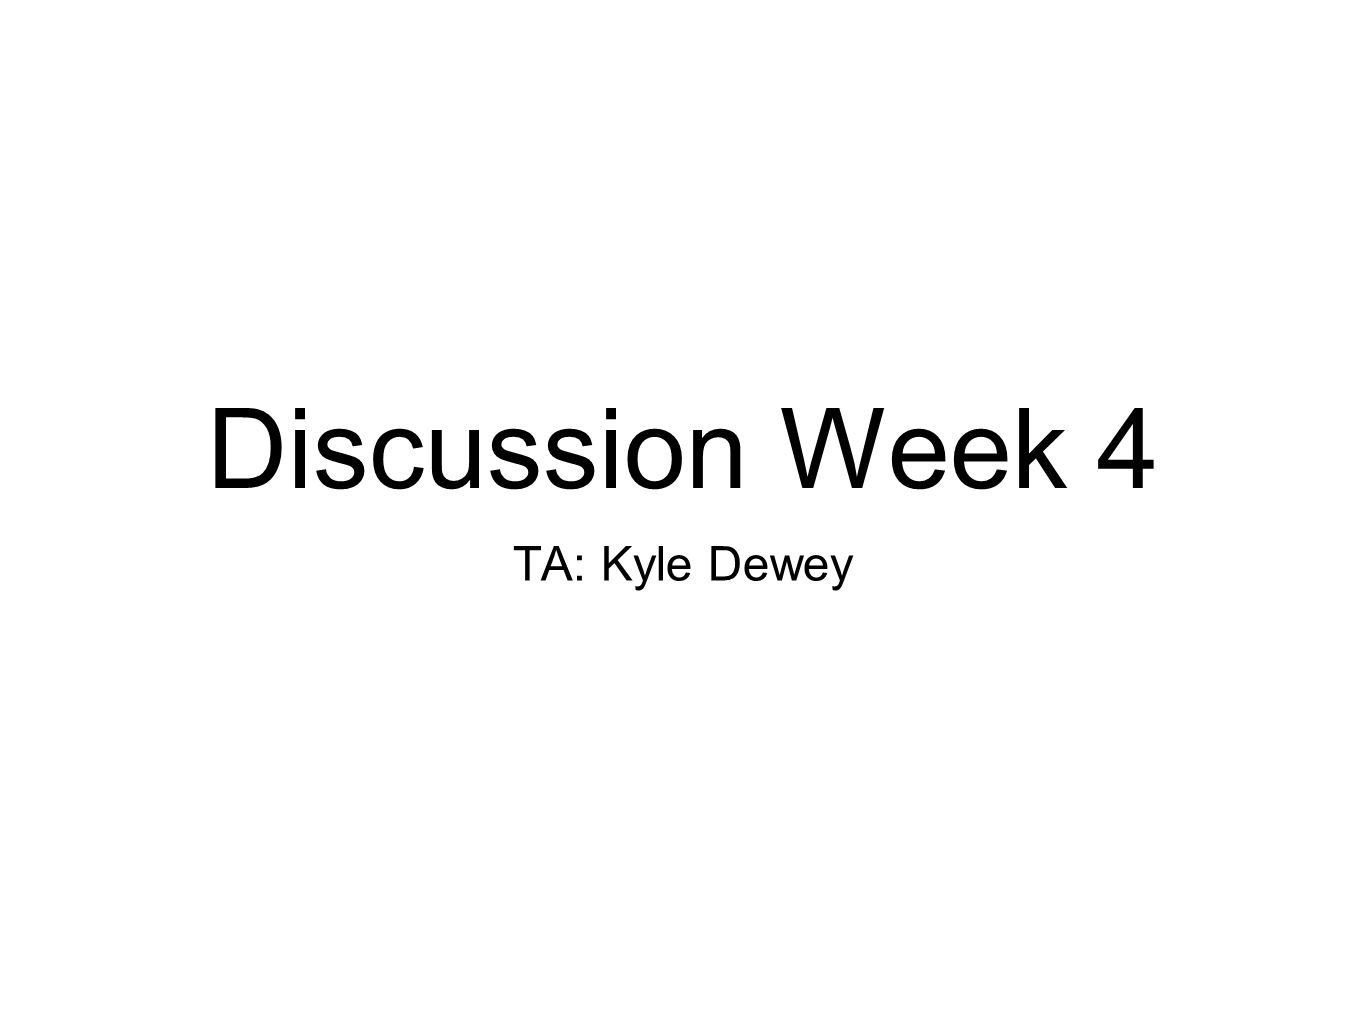 Discussion Week 4 TA: Kyle Dewey